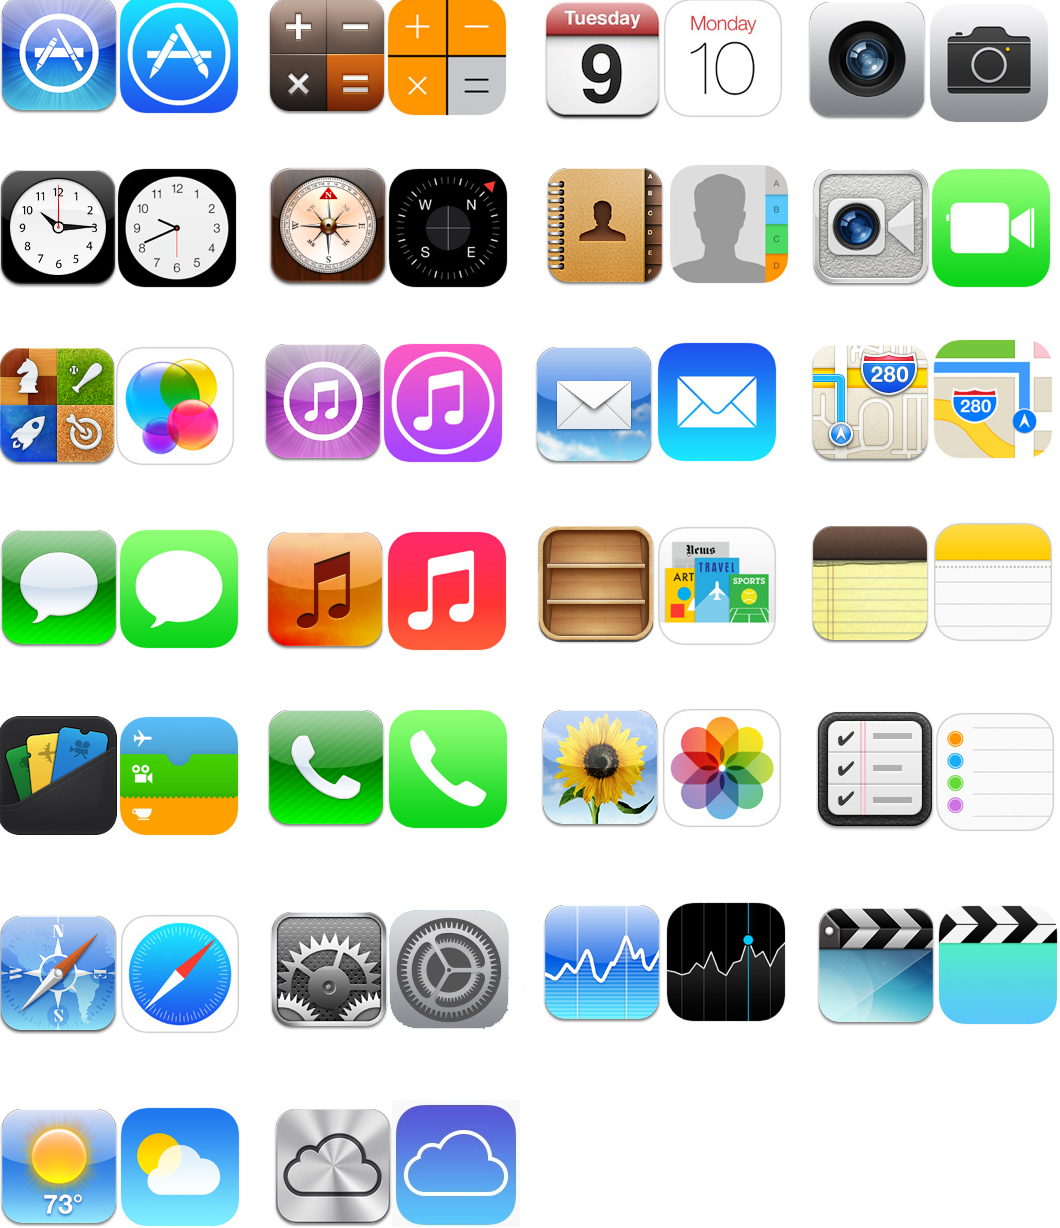 15 IPad IOS 7 App Icons Images